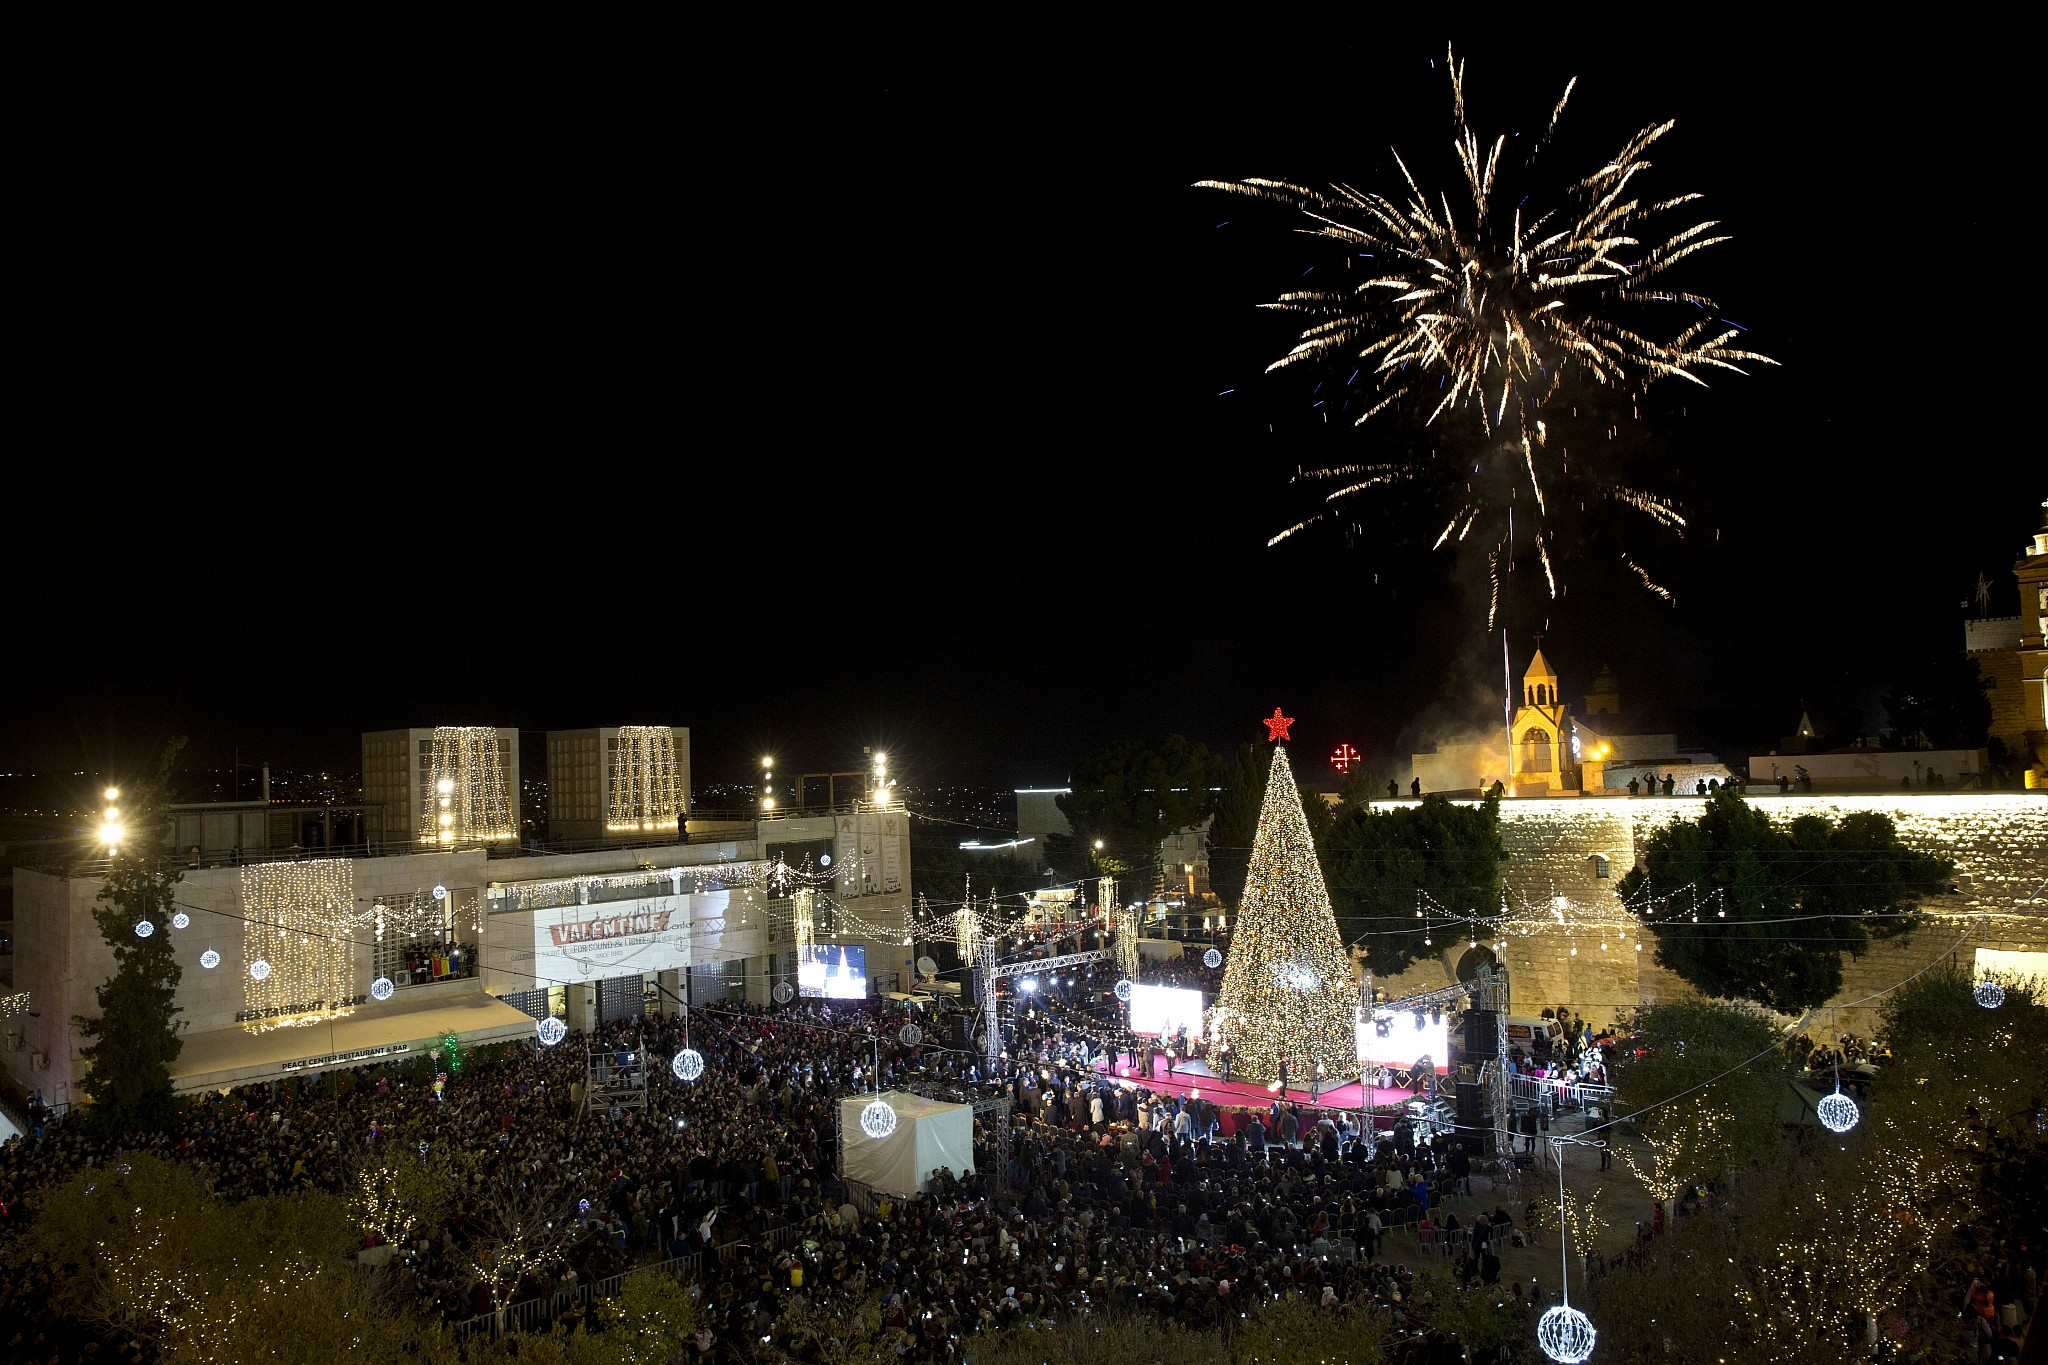 Christians celebrate the lighting of a Christmas tree in Manger Square, outside the Church of